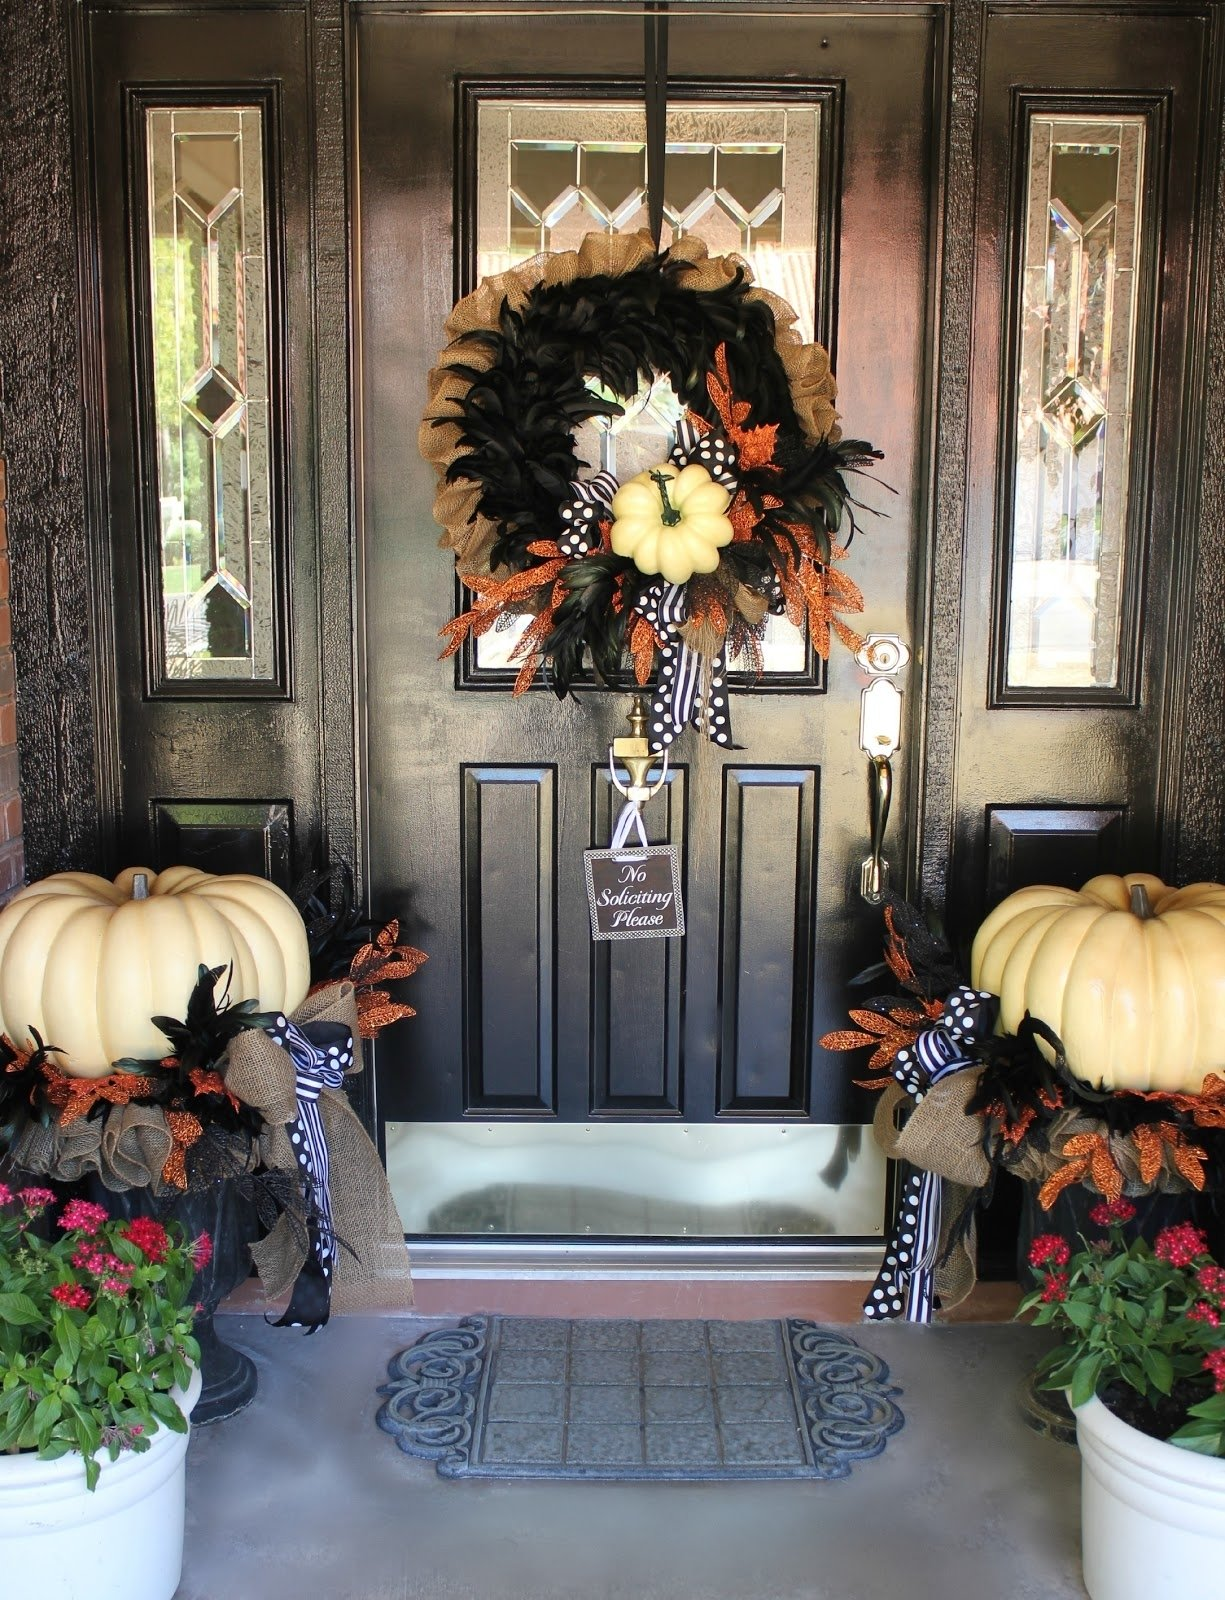 10 Lovely Front Porch Decorating Ideas For Fall 25 elegant halloween decorations ideas pumpkin wreath front fall